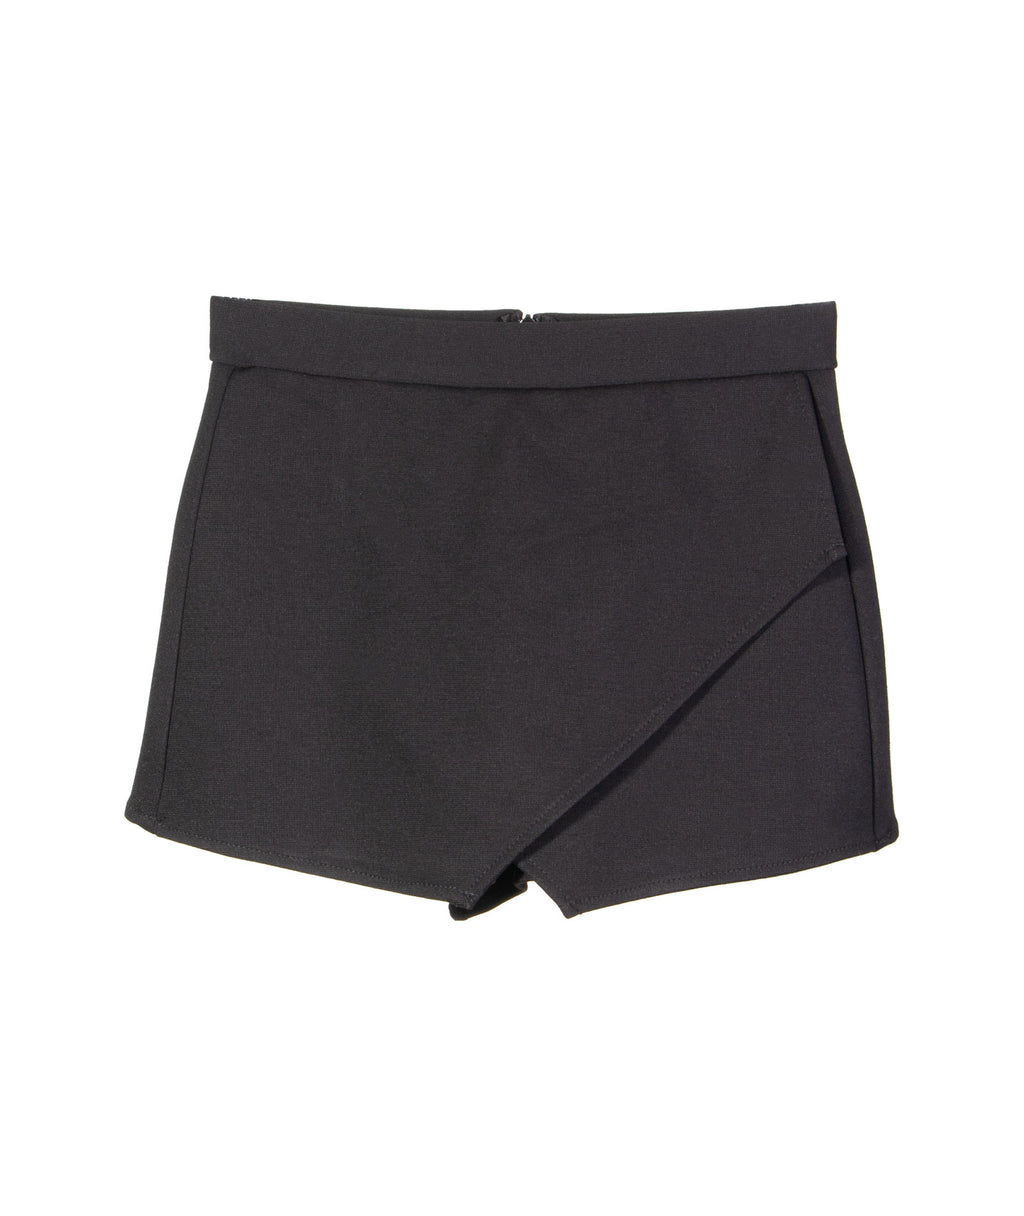 By Debra Girls Black Ponte Skort